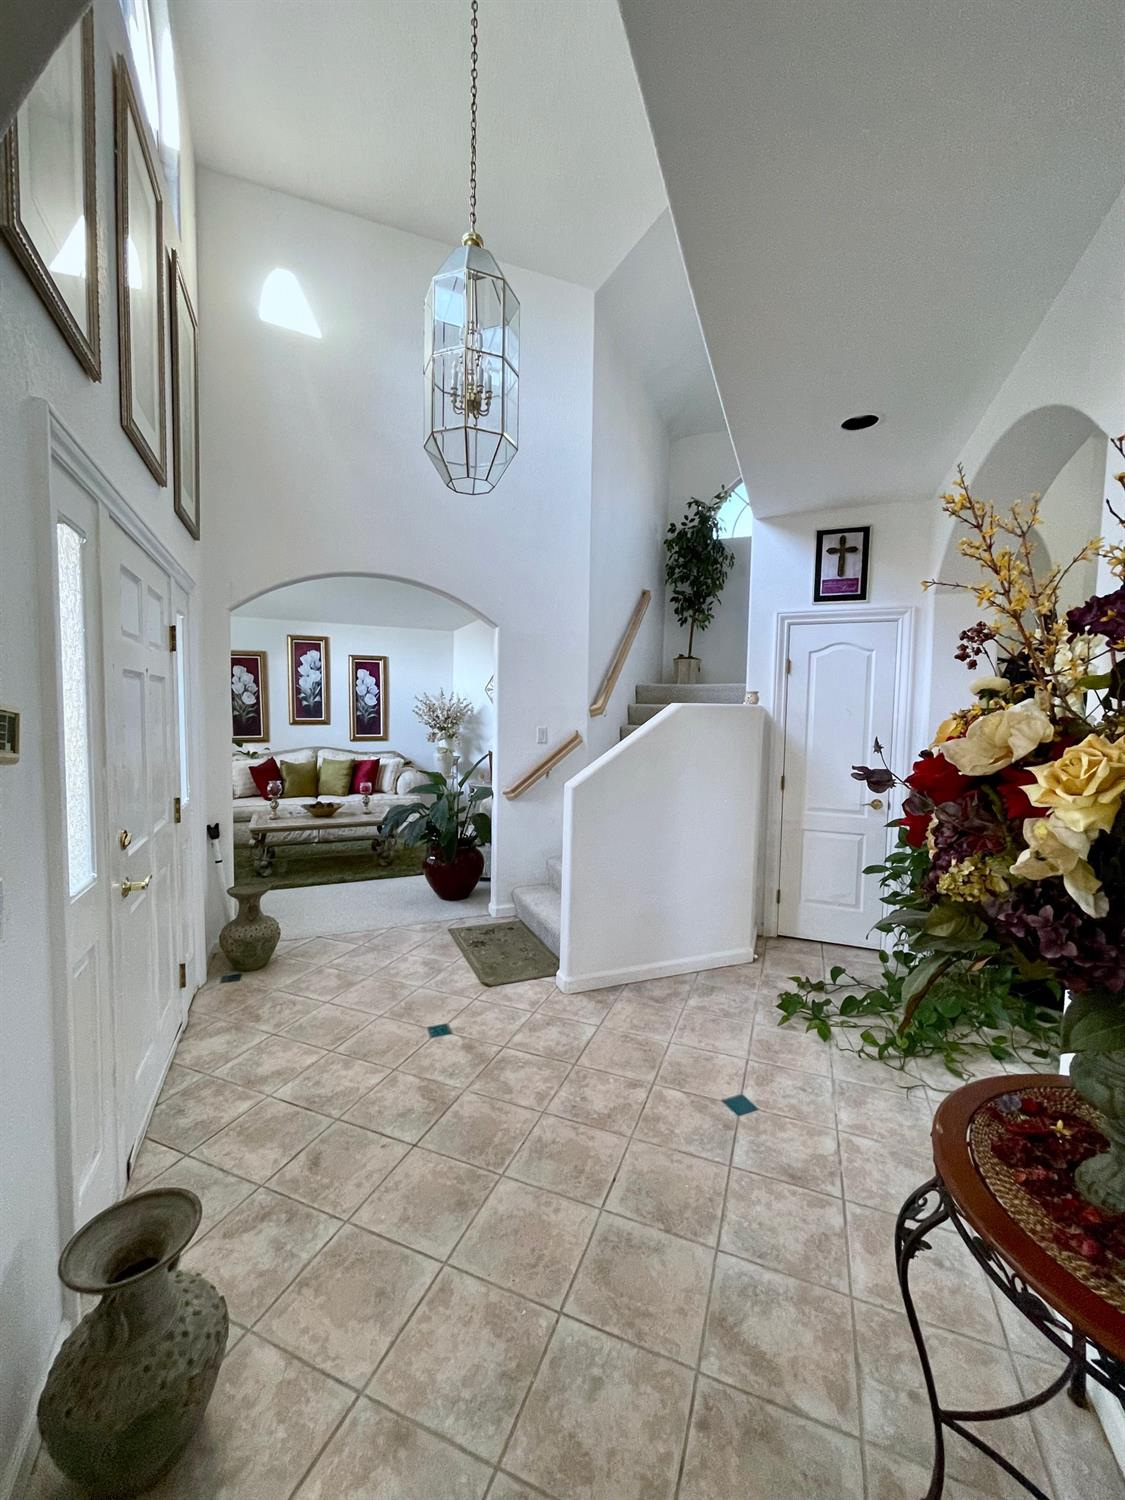 Photo 4 for Listing #221096936